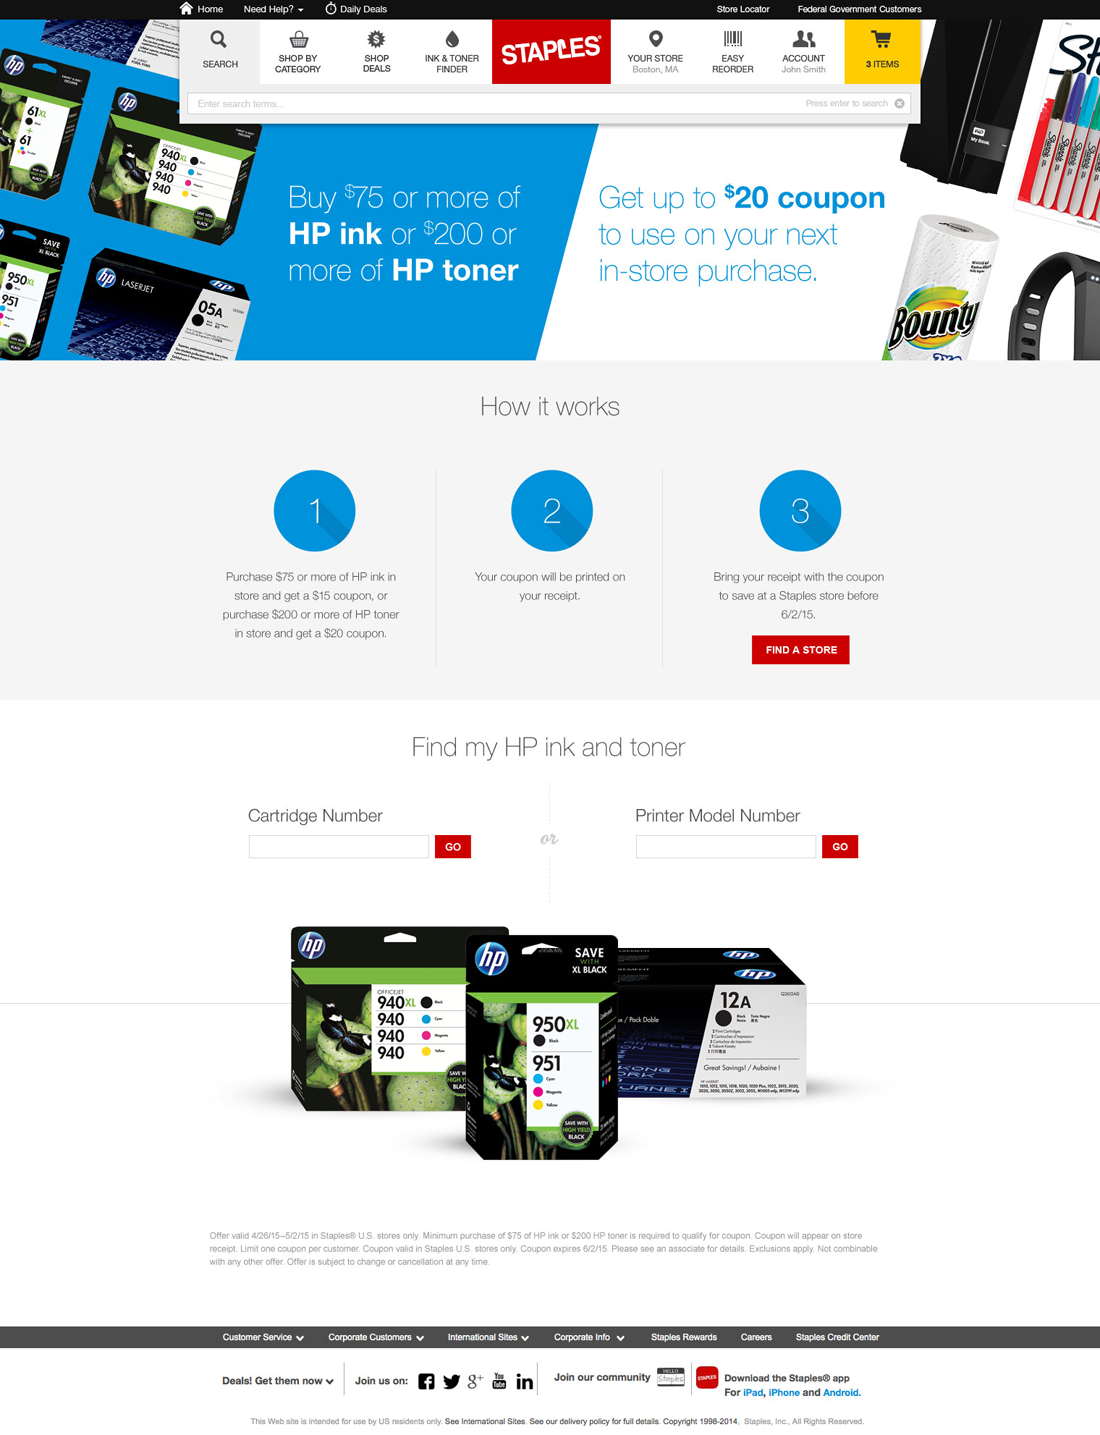 Staples HP Ink & Toner Offer